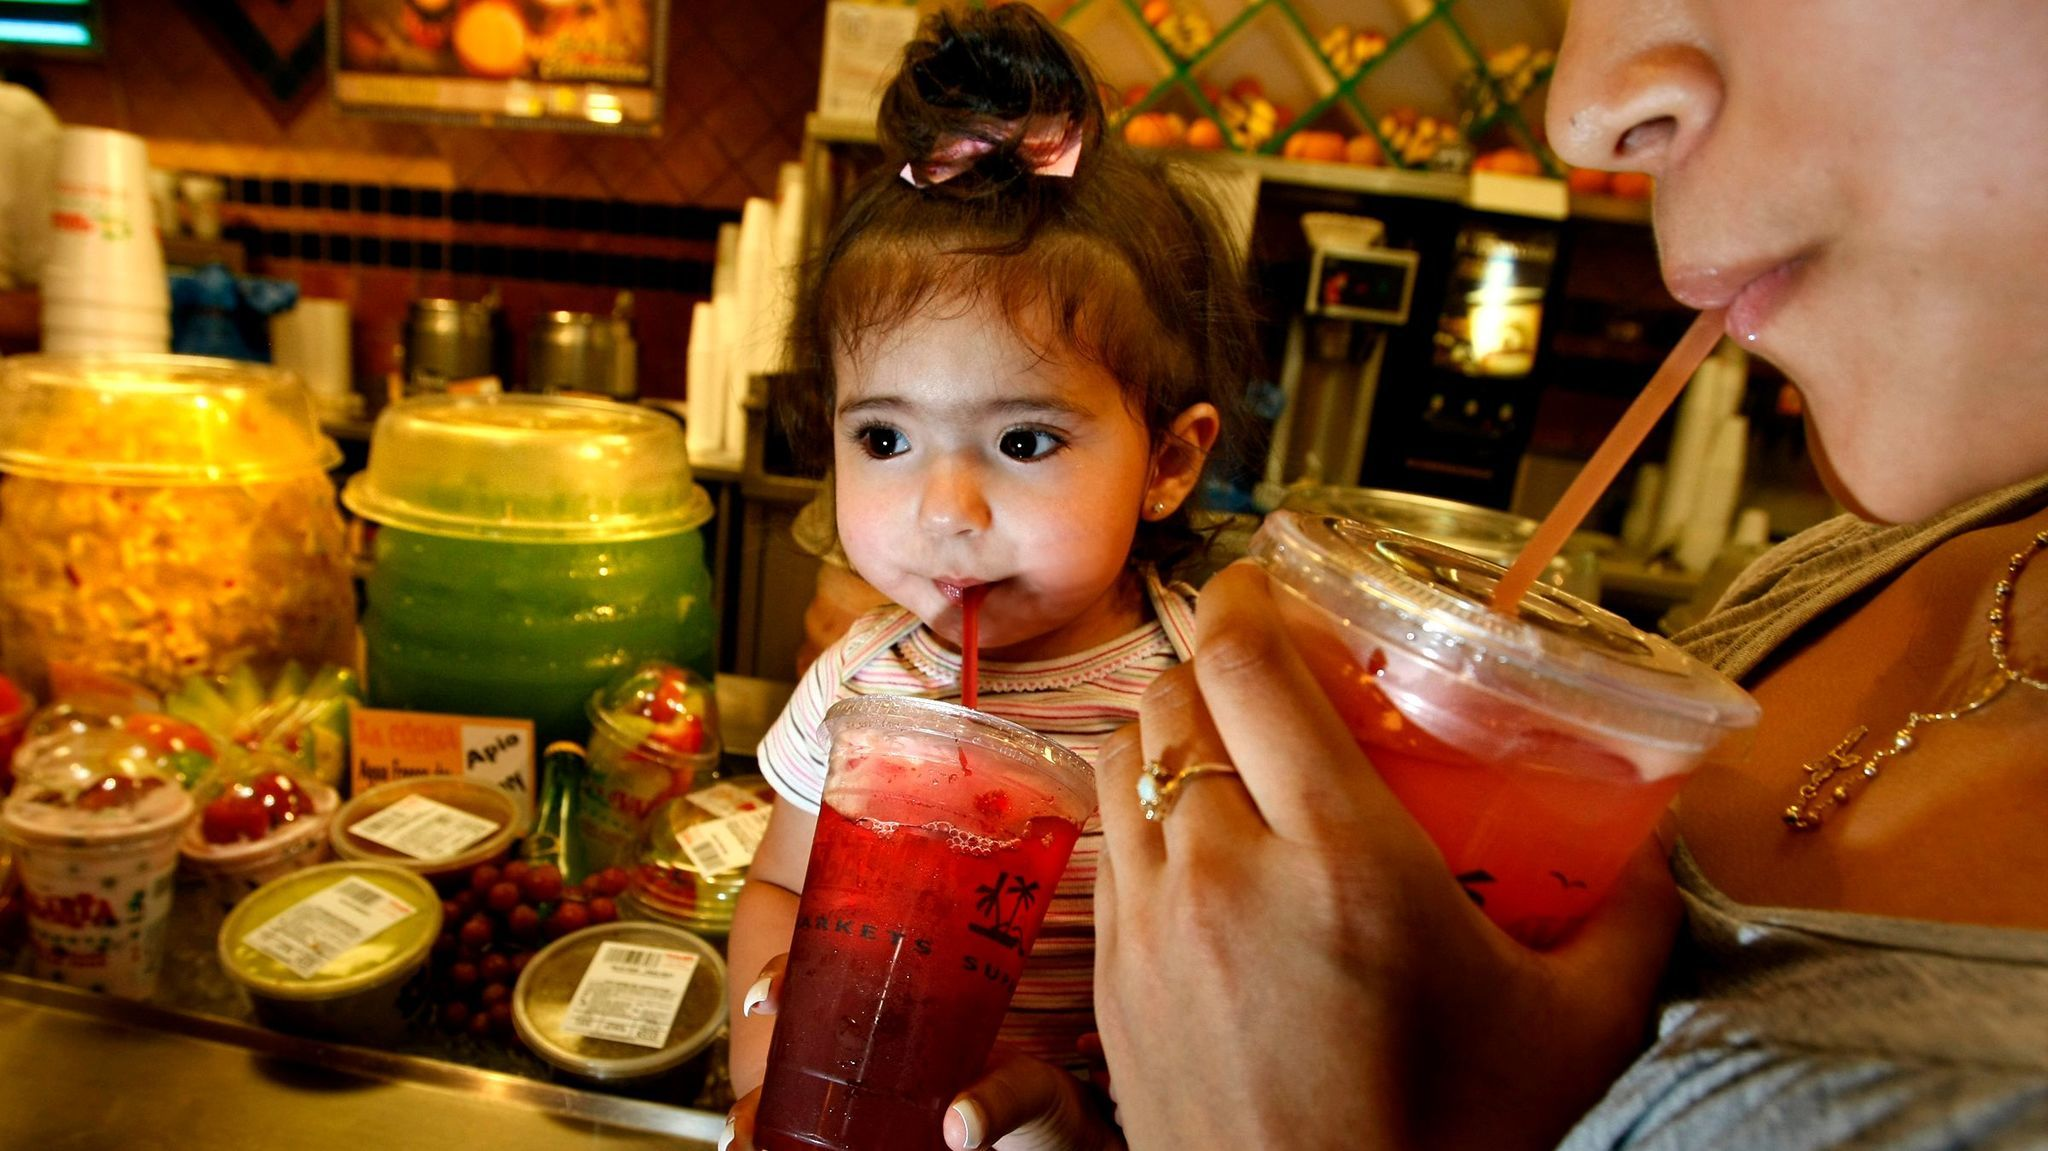 The older children get, the more ubiquitous juice becomes. Still, parents should avoid giving it to their kids, pediatricians say.